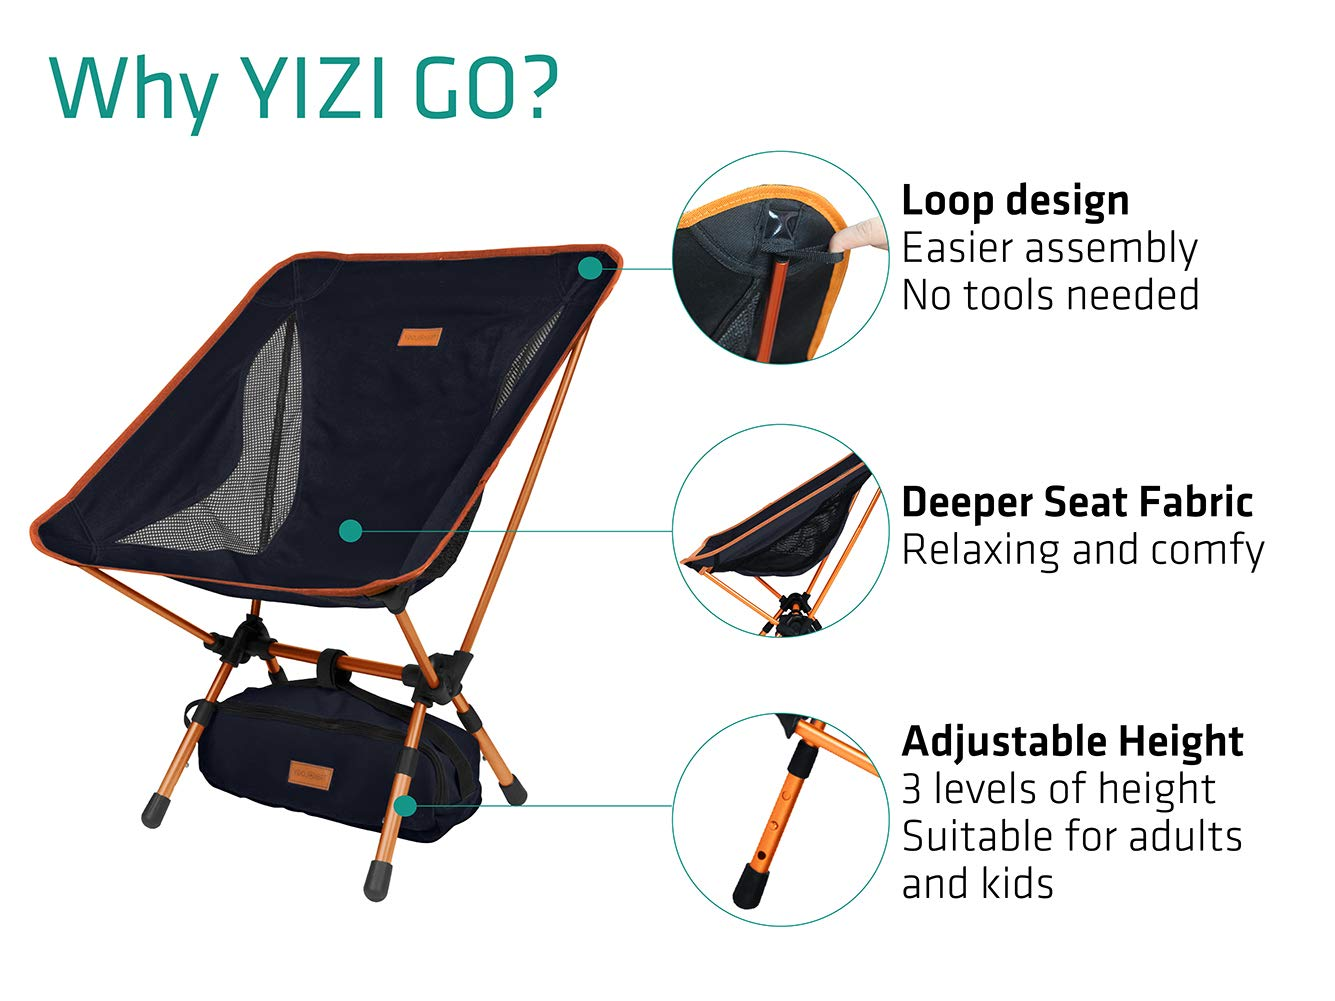 Heavy Duty 300 lb Capacity Compact Ultralight Folding Backpacking Chairs in a Carry Bag Trekology YIZI Go Portable Camping Chair Adjustable Height